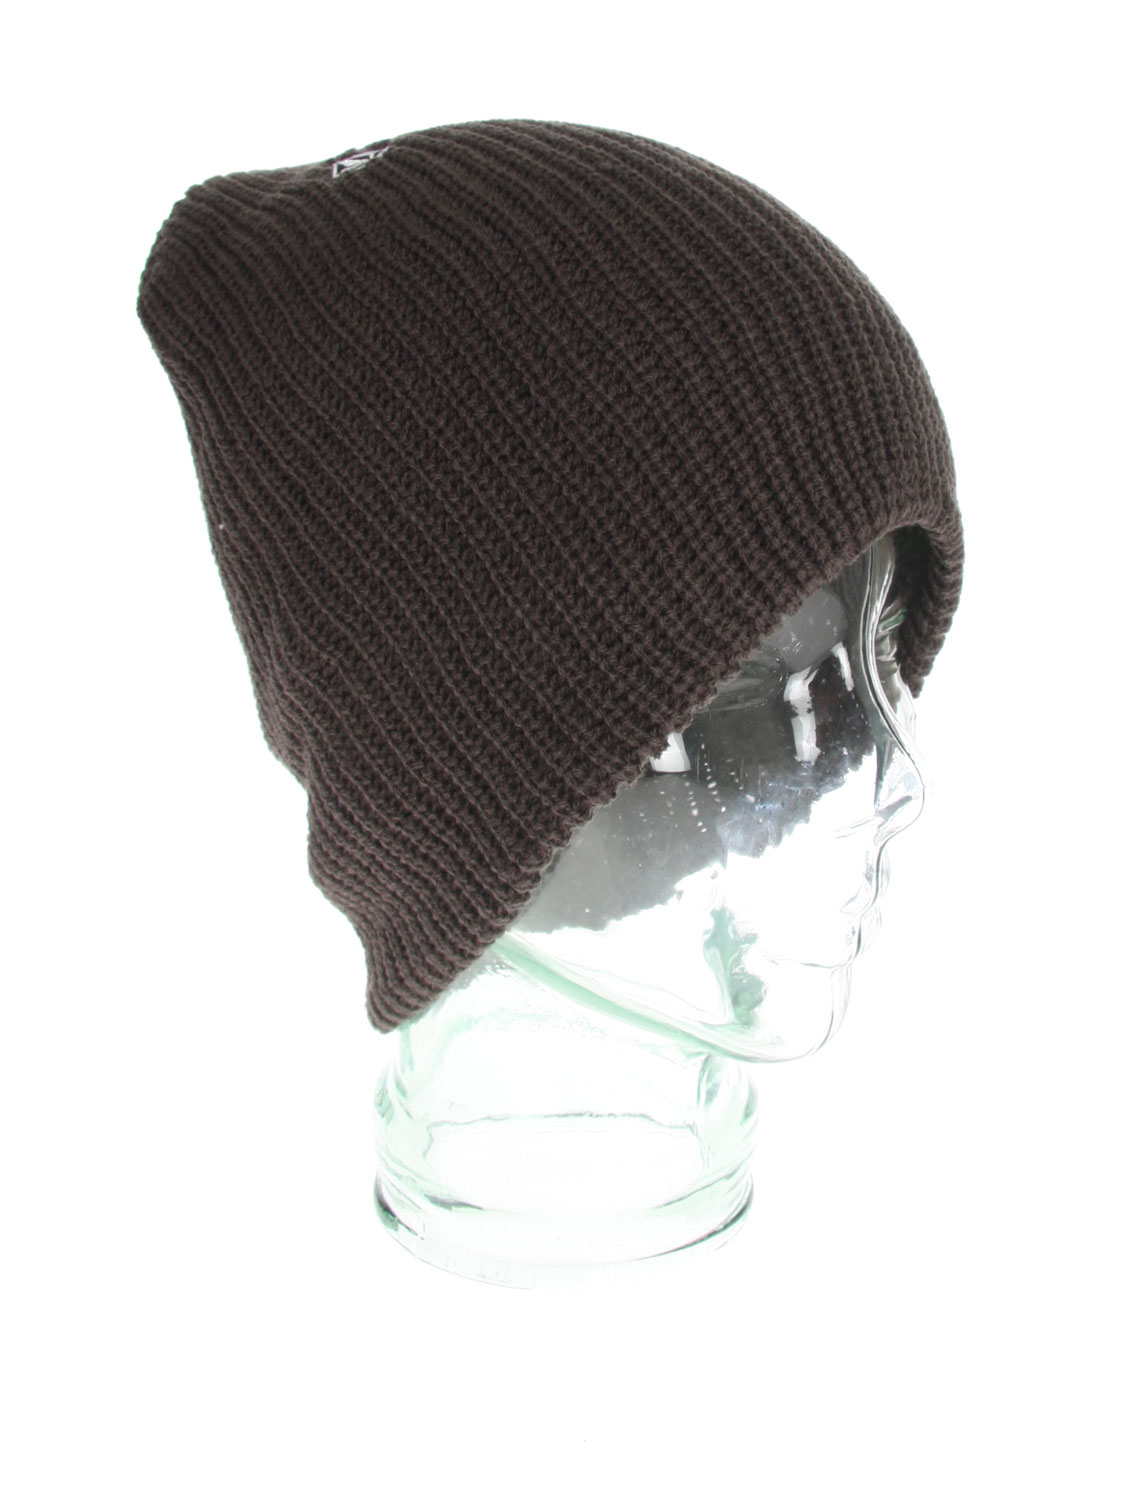 Surf Key Feature of the Volcom Full Stone Cuff Beanie: Knit Beanie 2-Color Stone Embroidery - $17.95